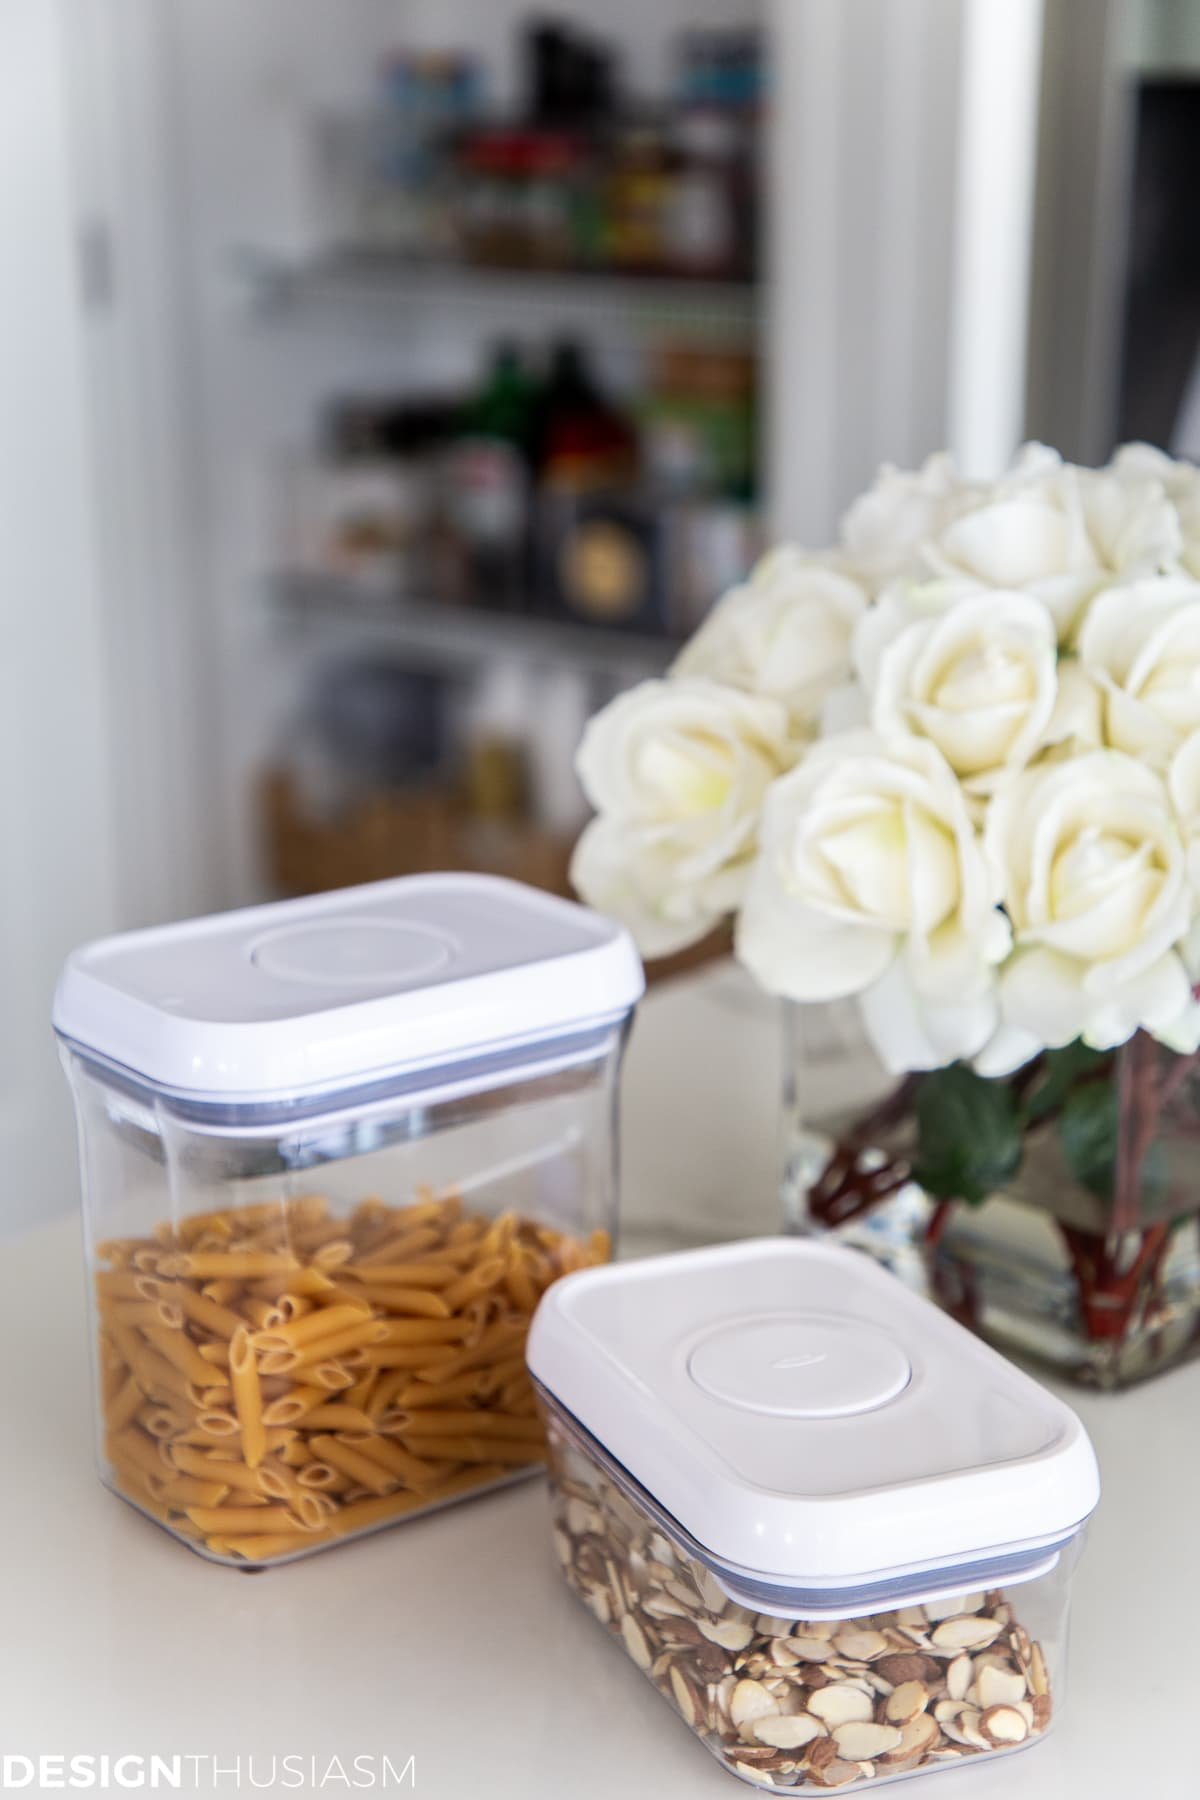 Oxo containers for food storage in the pantry